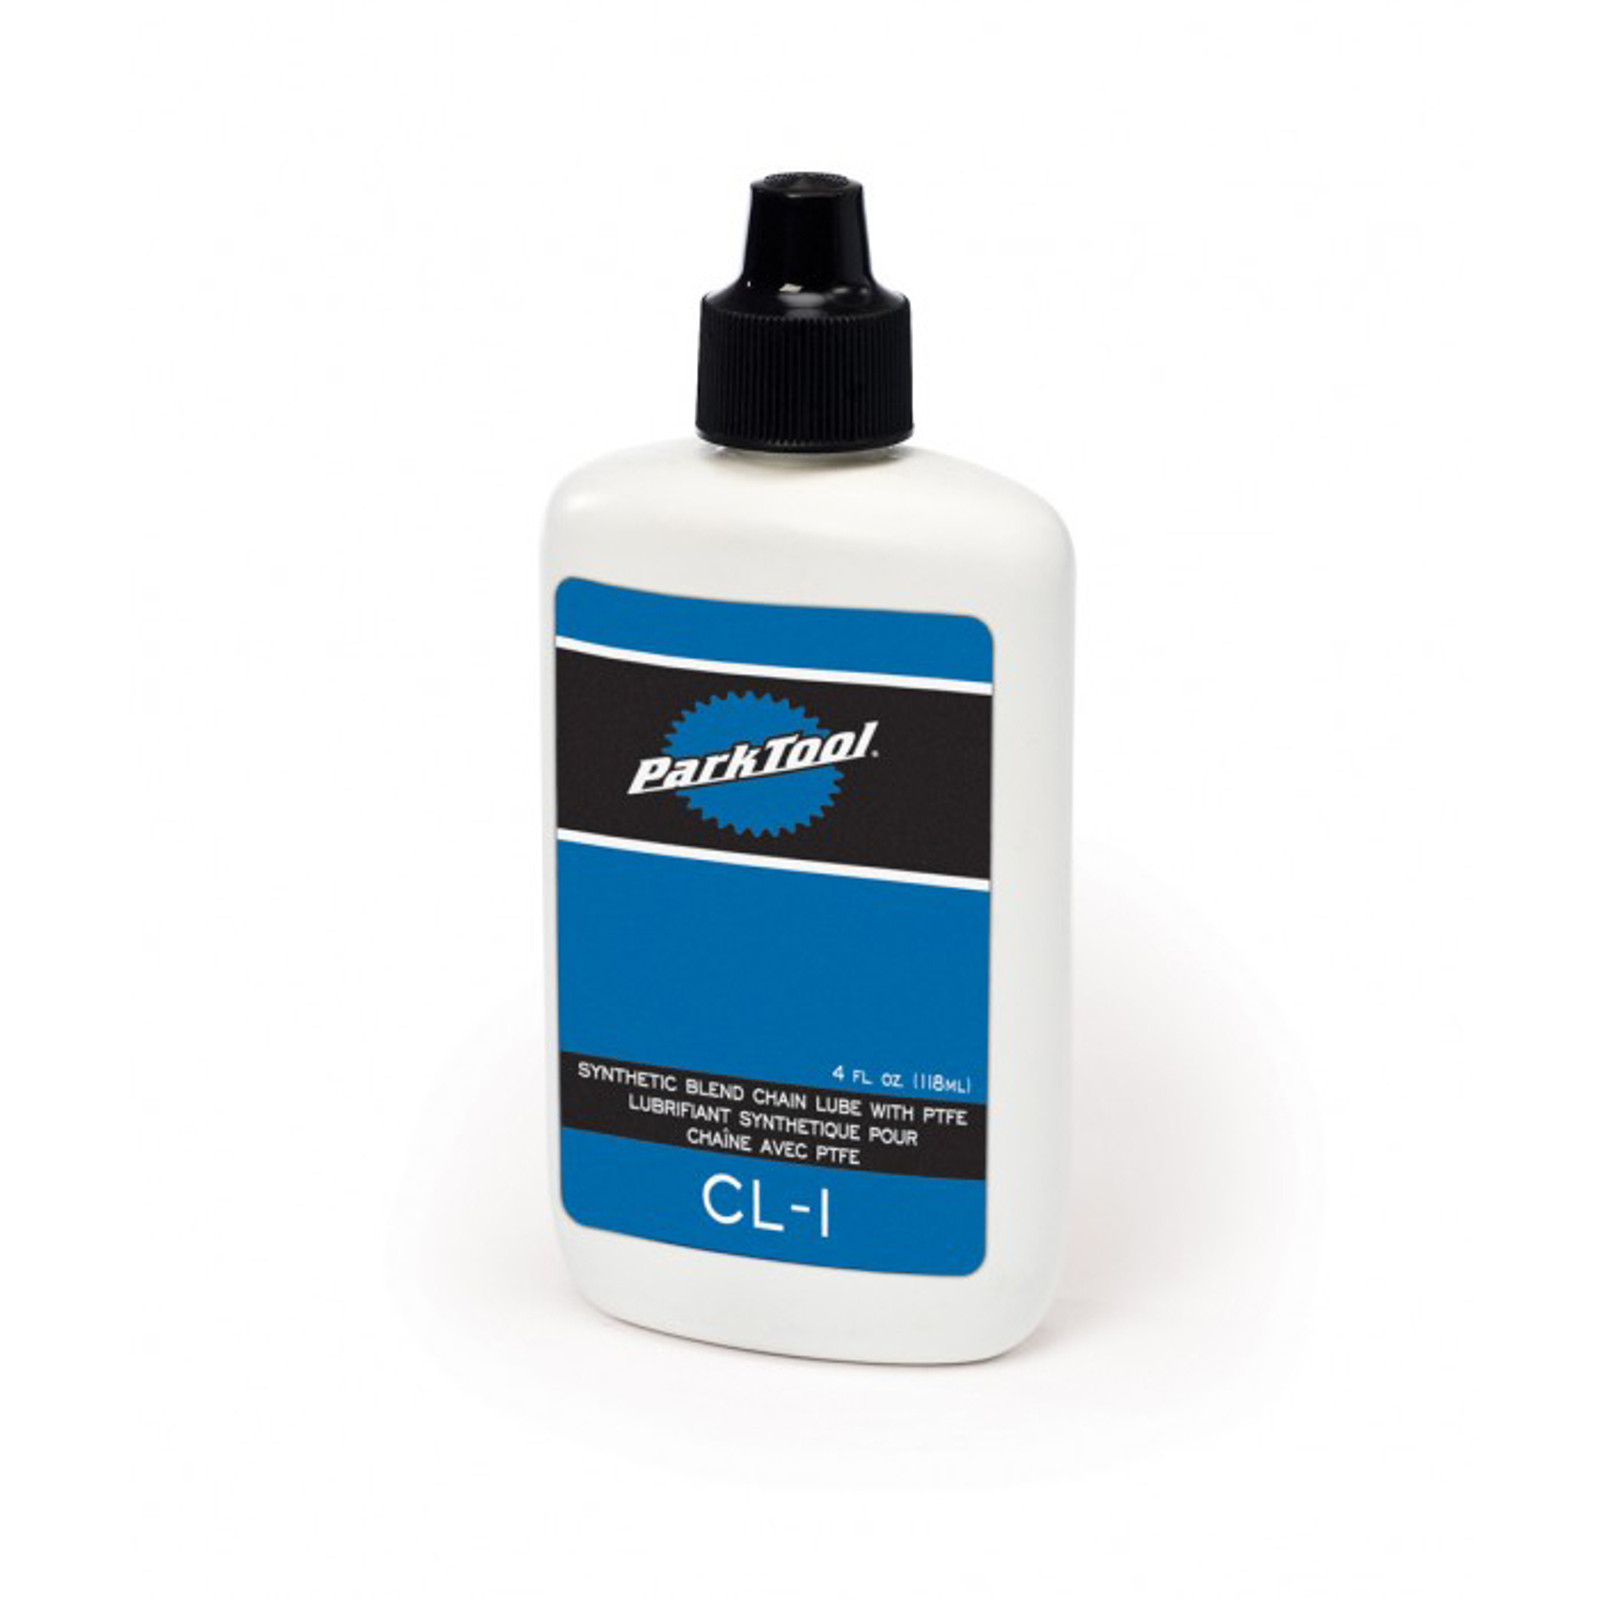 Synthetic Blend Chain Lube with PTFE